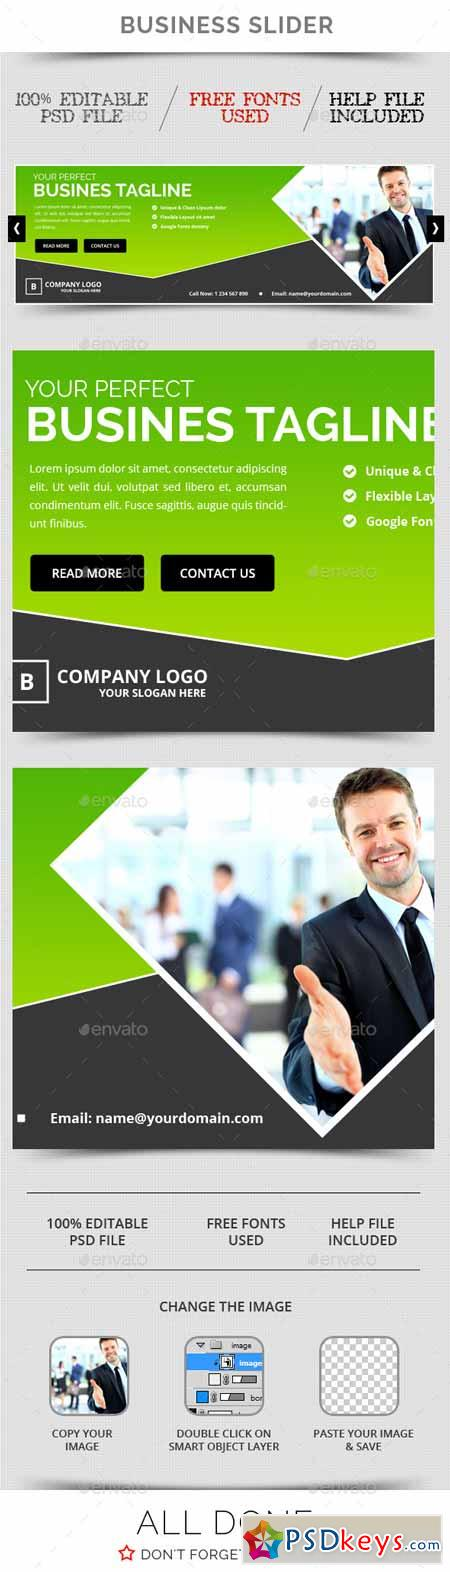 Business Slider V21 11557527